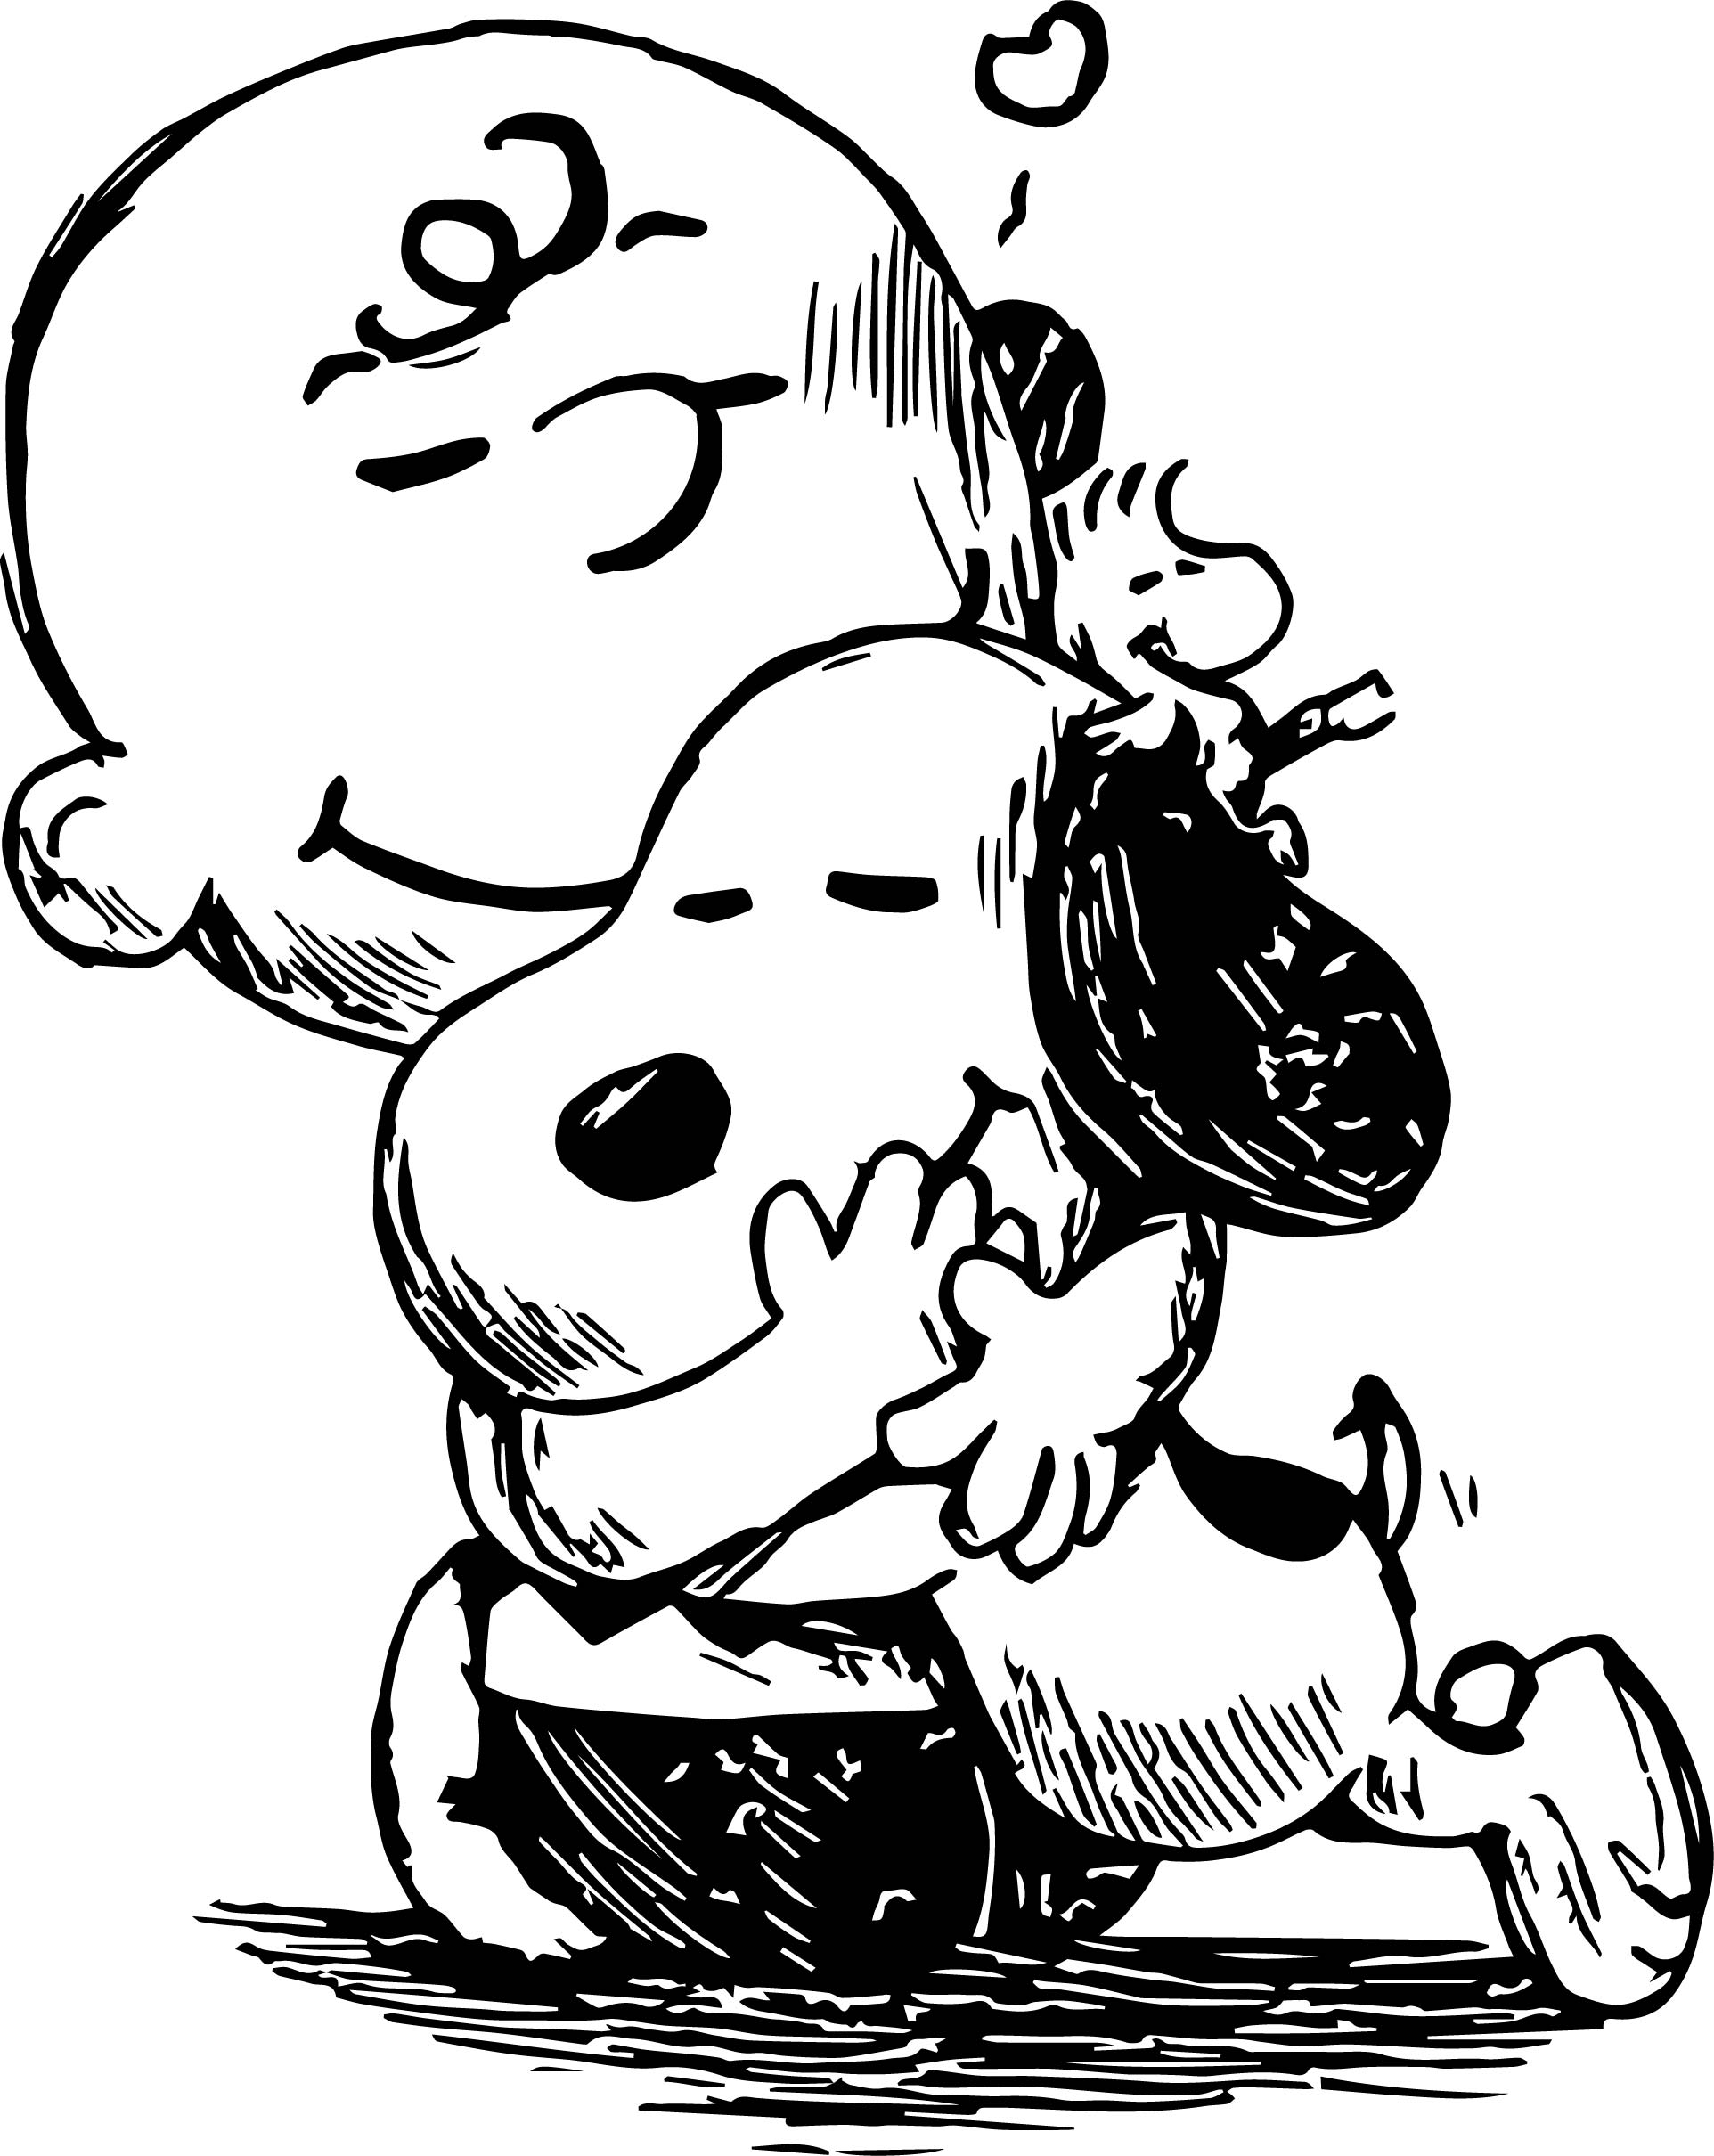 Snoopy And Charlie Brown Black White Sketch Coloring Page Brown Coloring Page